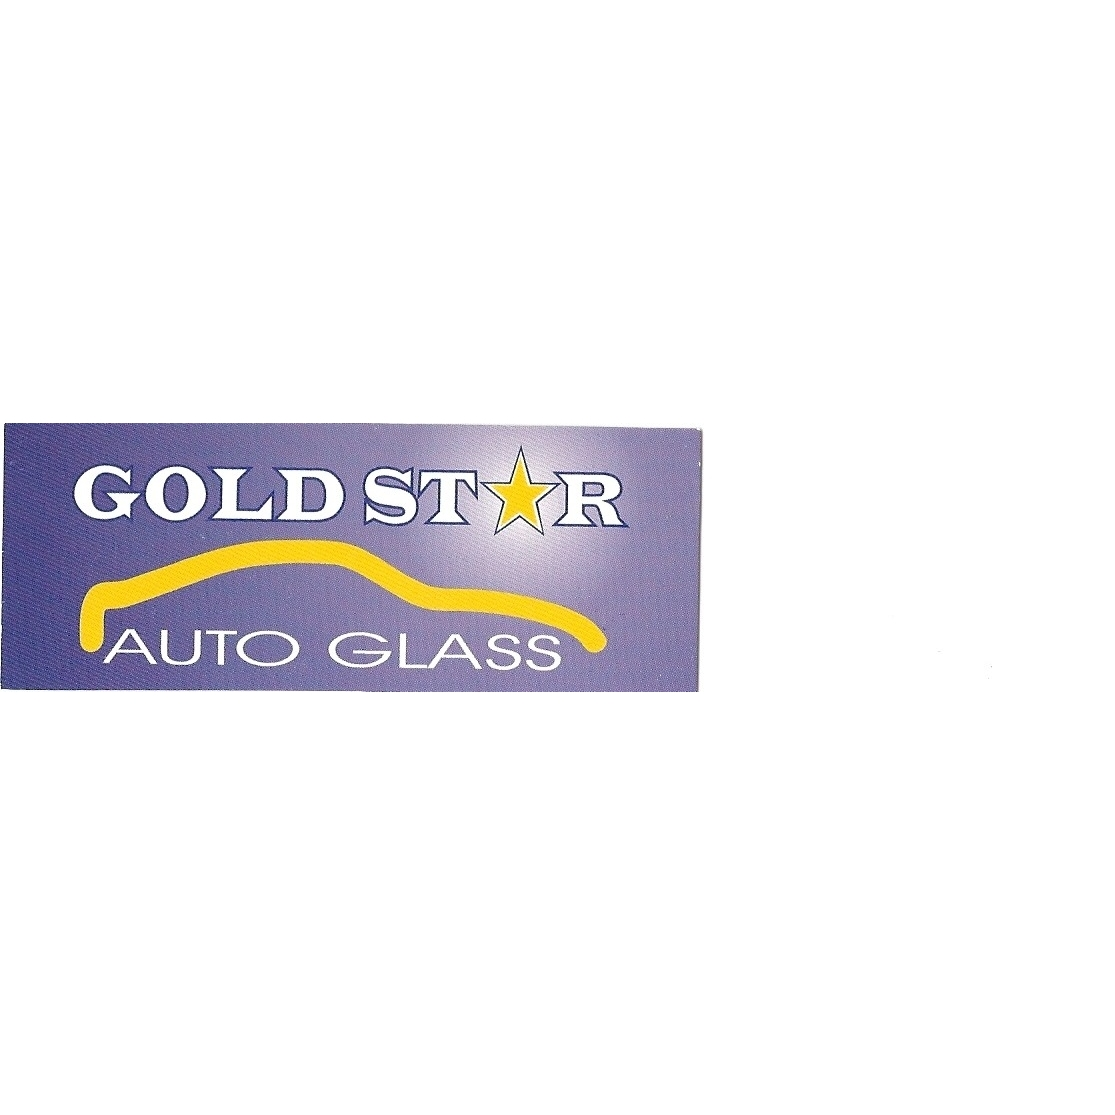 Gold Star Auto Glass image 1